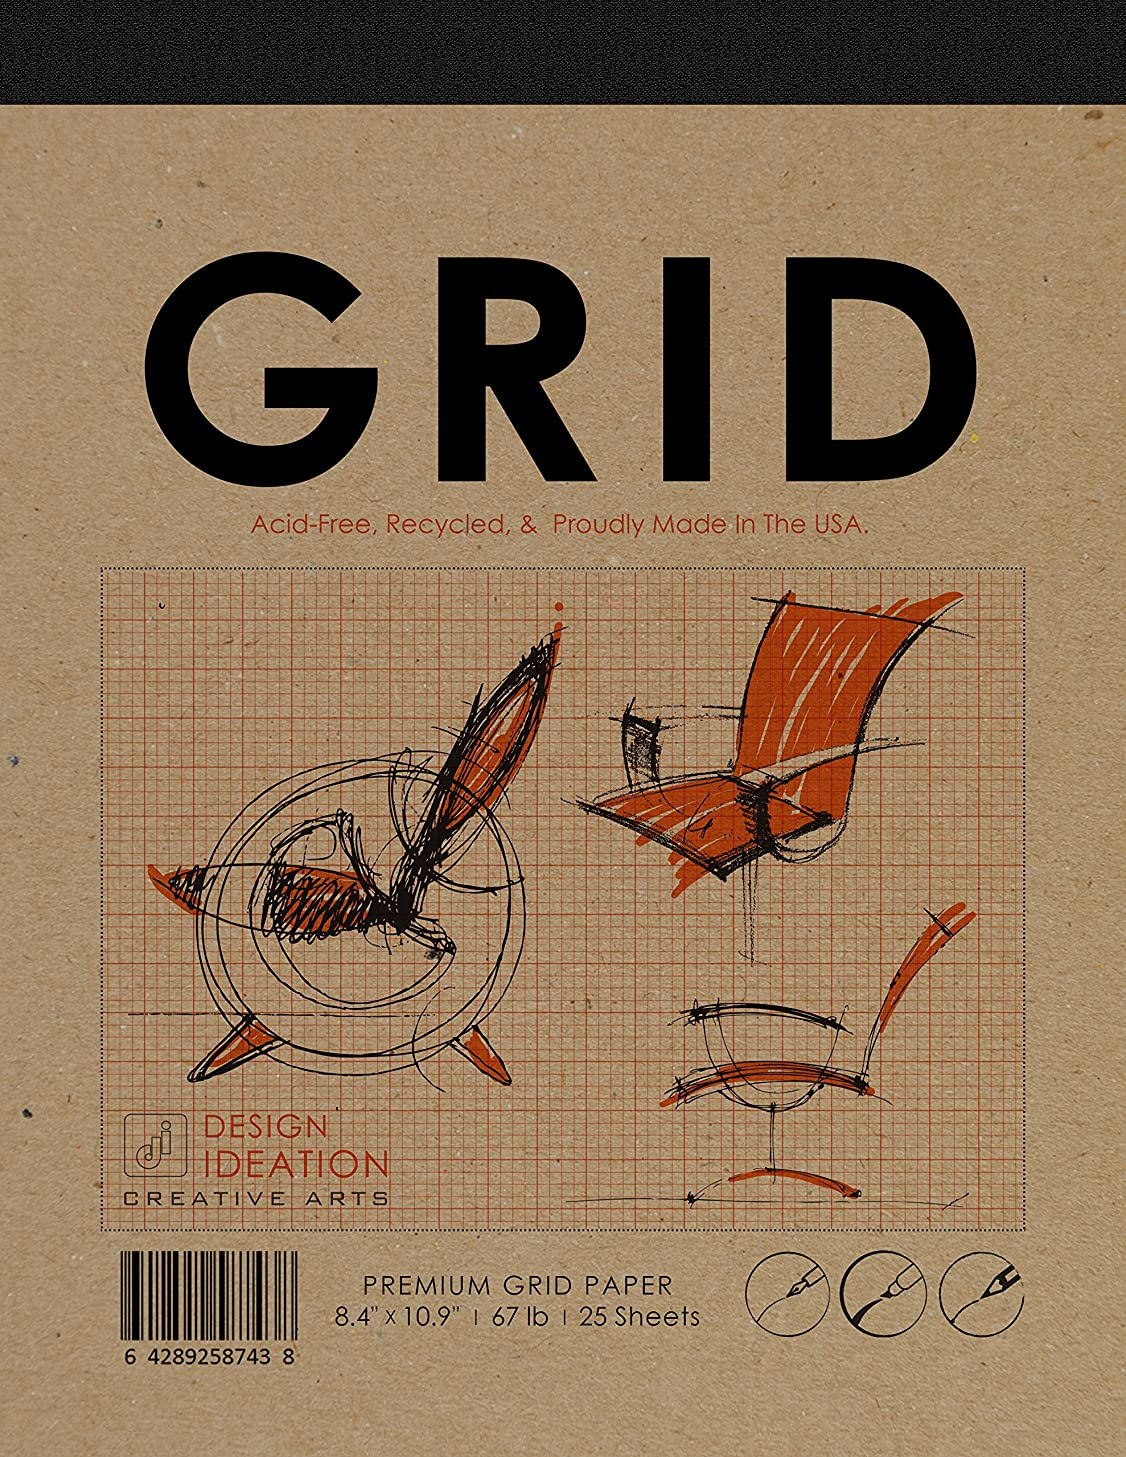 Premium Grid Paper Creative Project Pad for Pencil, Ink, and Marker. Great for Art, Design and Education. (Jumbo 8.5